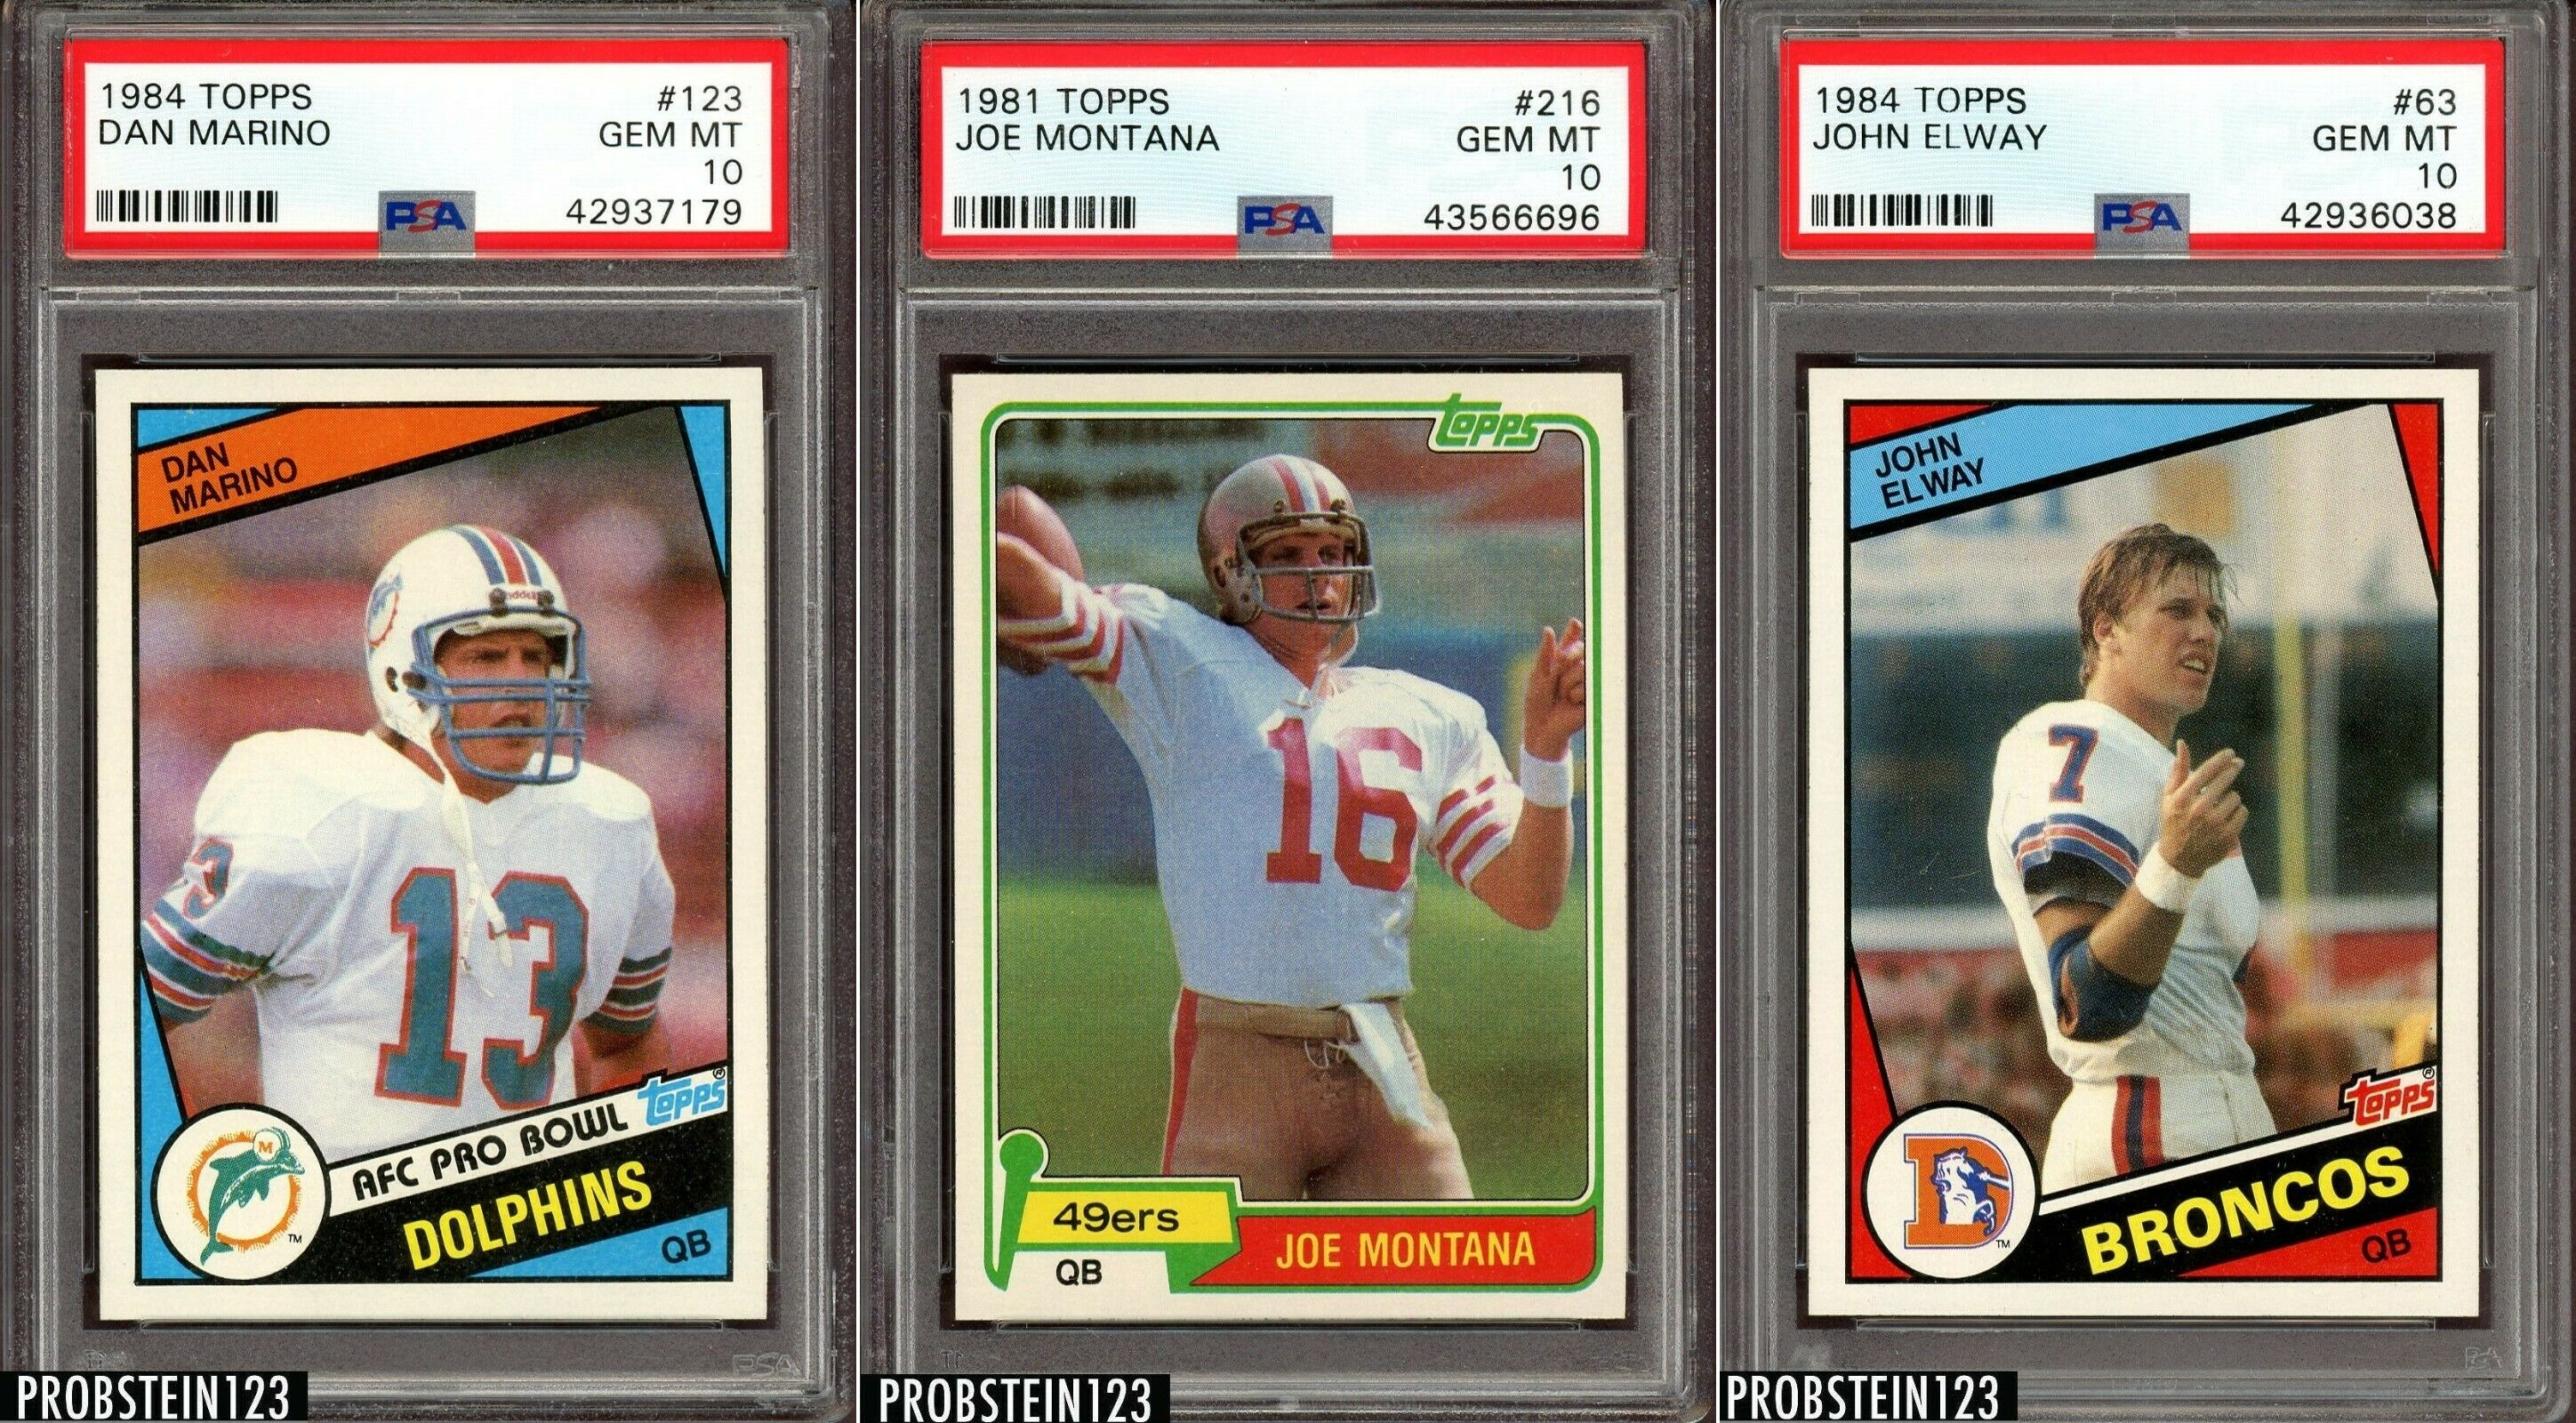 For the price point which rookie card do you buy to